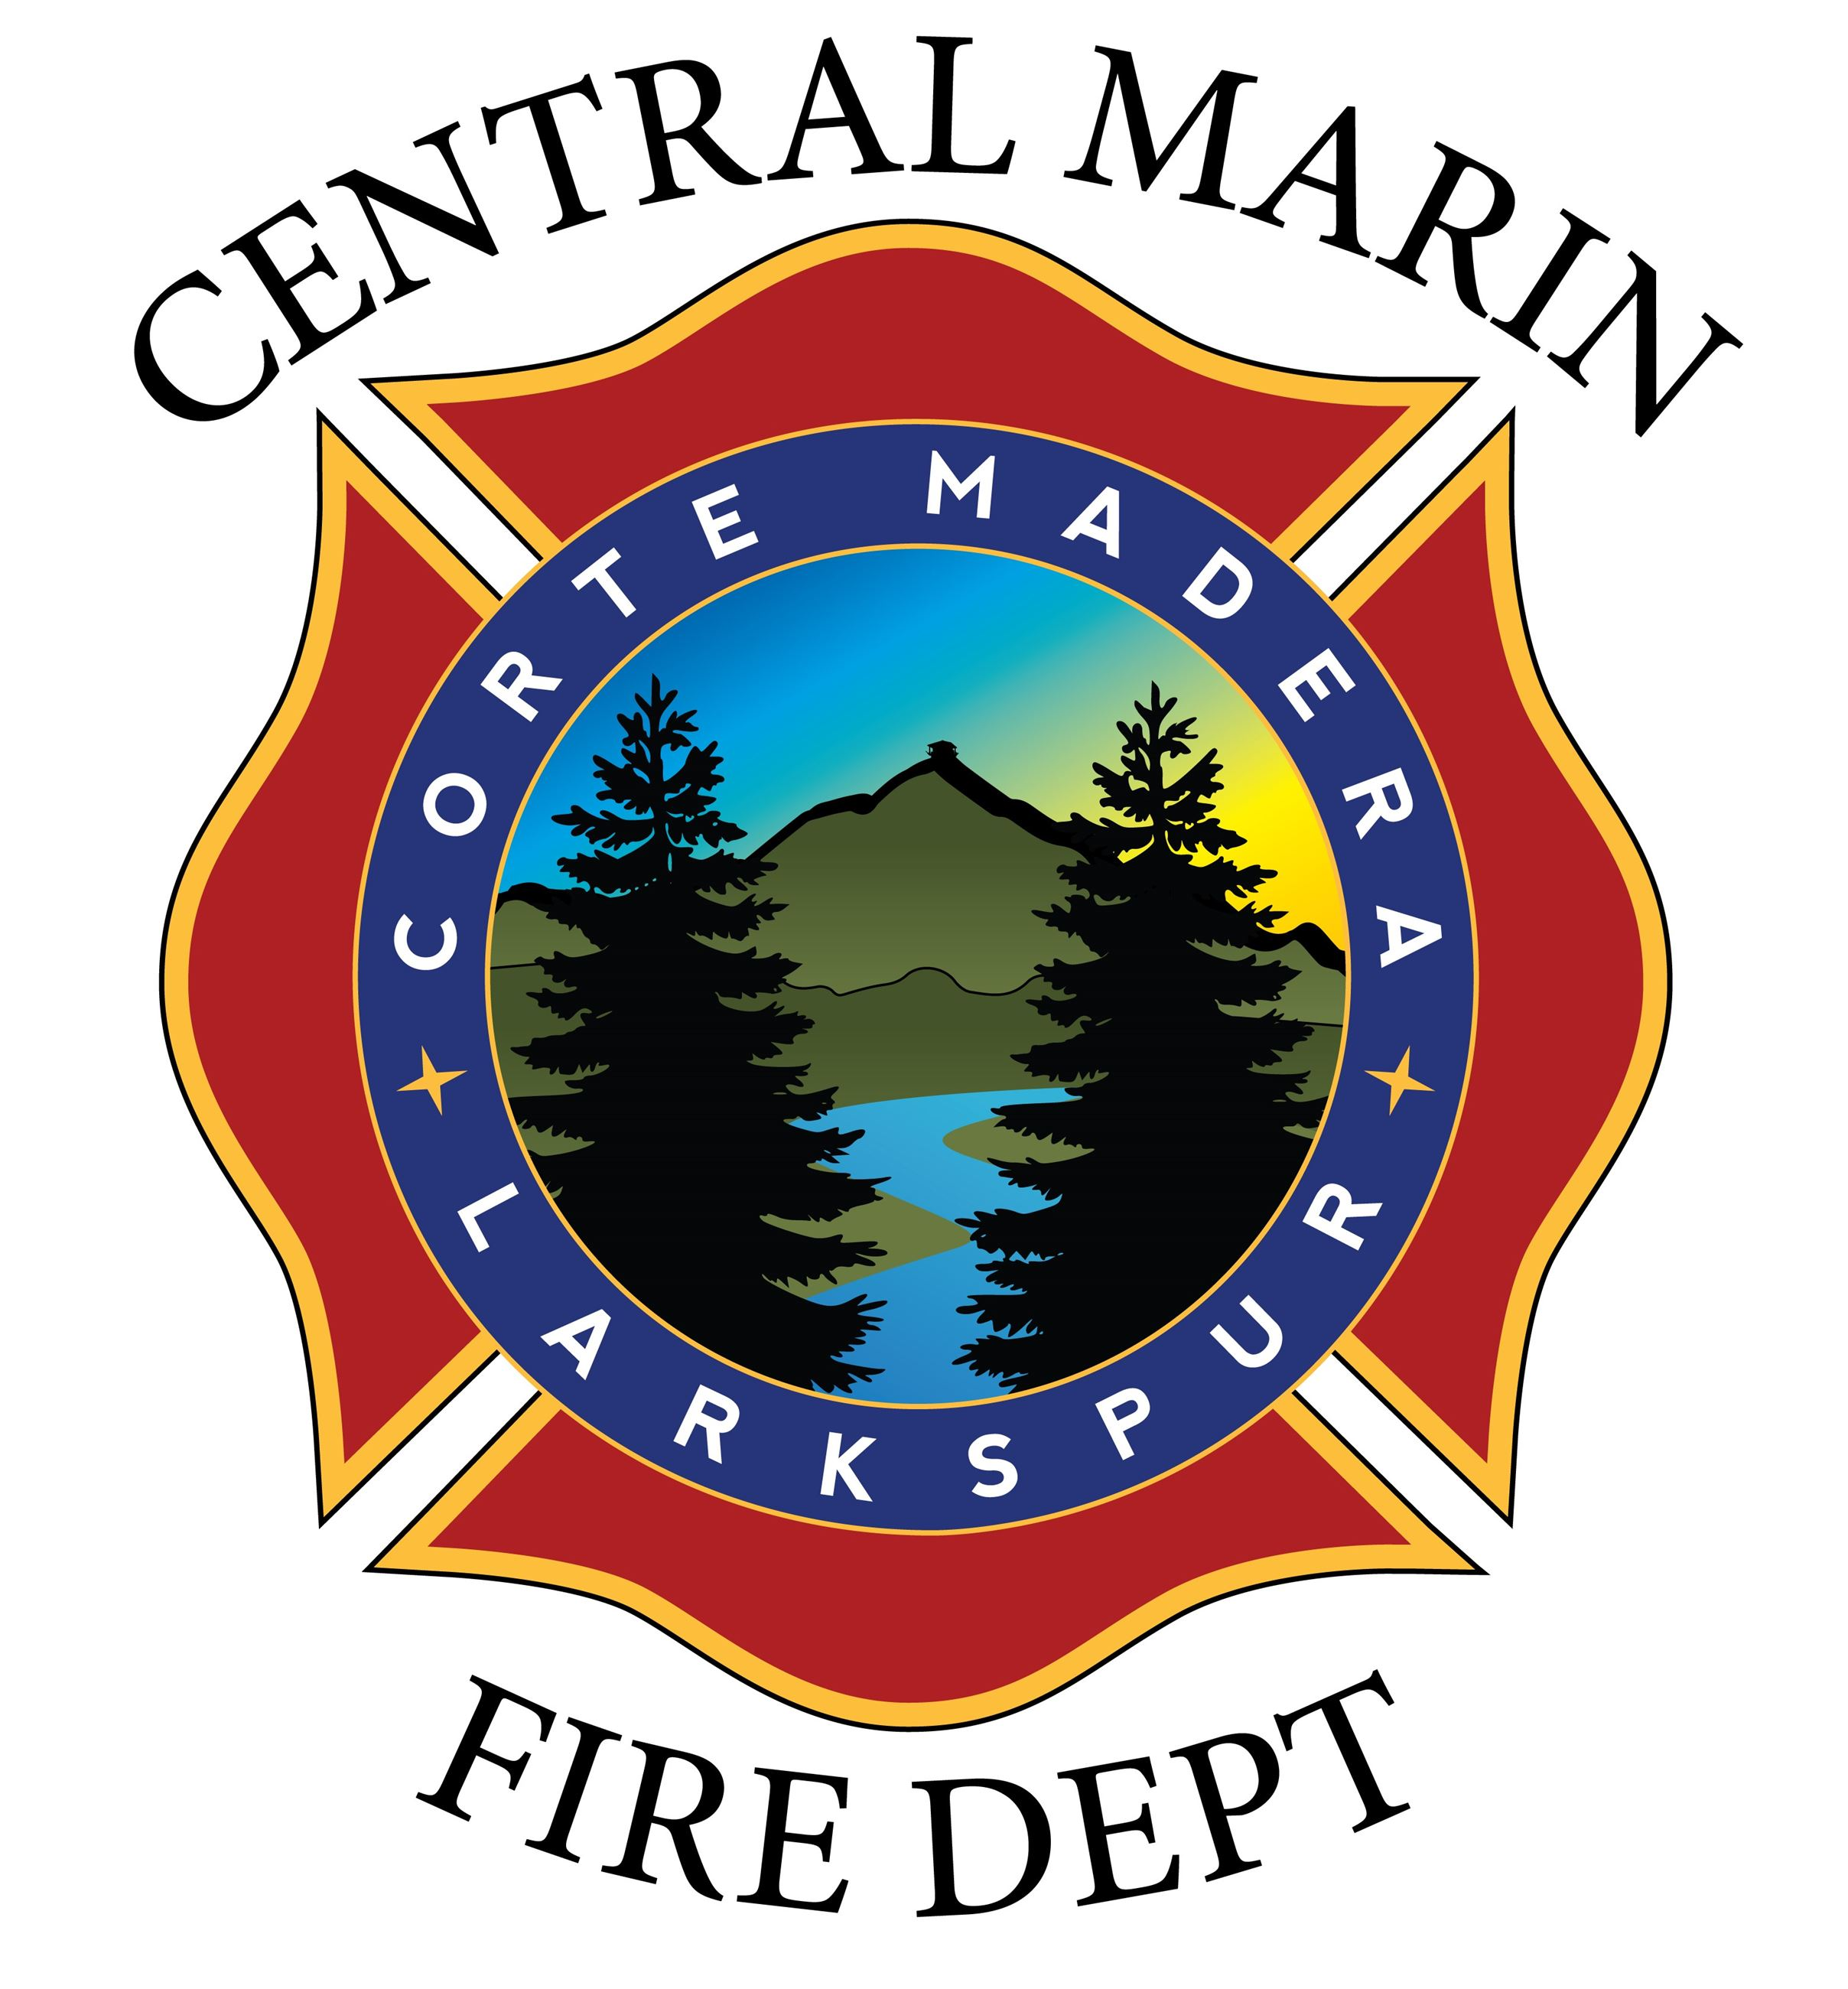 Central Marin Fire Logo